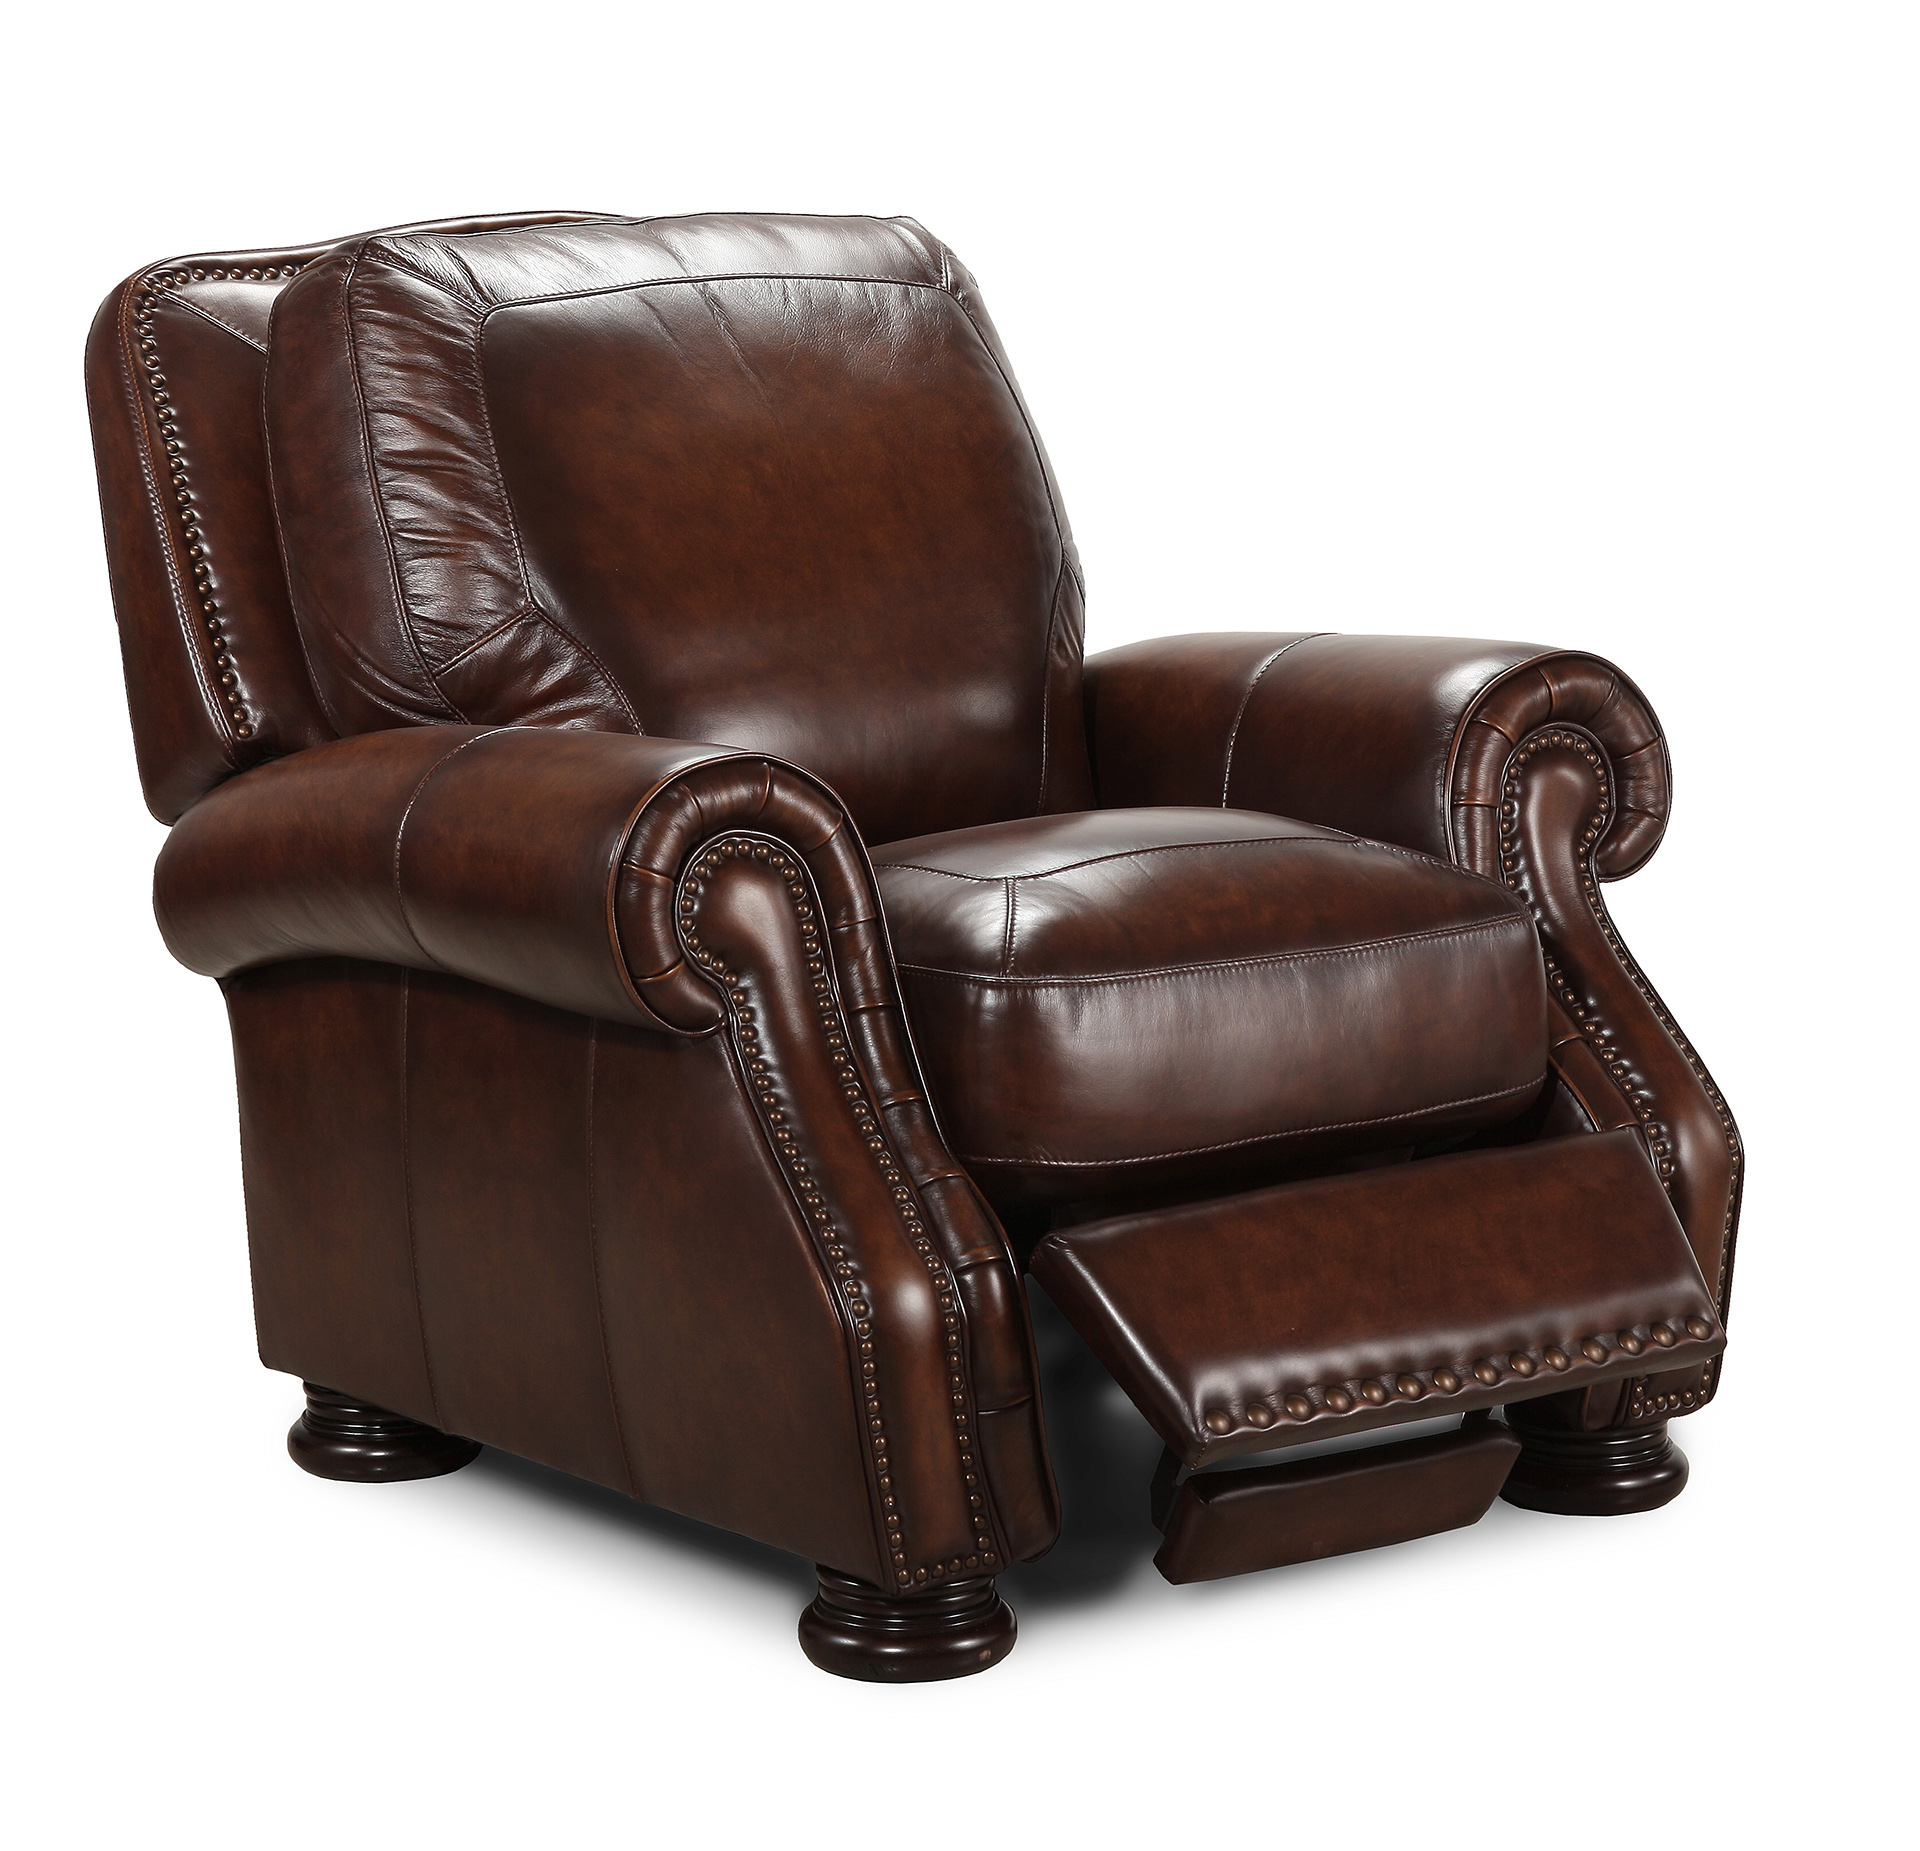 Leather Sofas Costco: Manwah Leather Power Reclining Sofa Costco